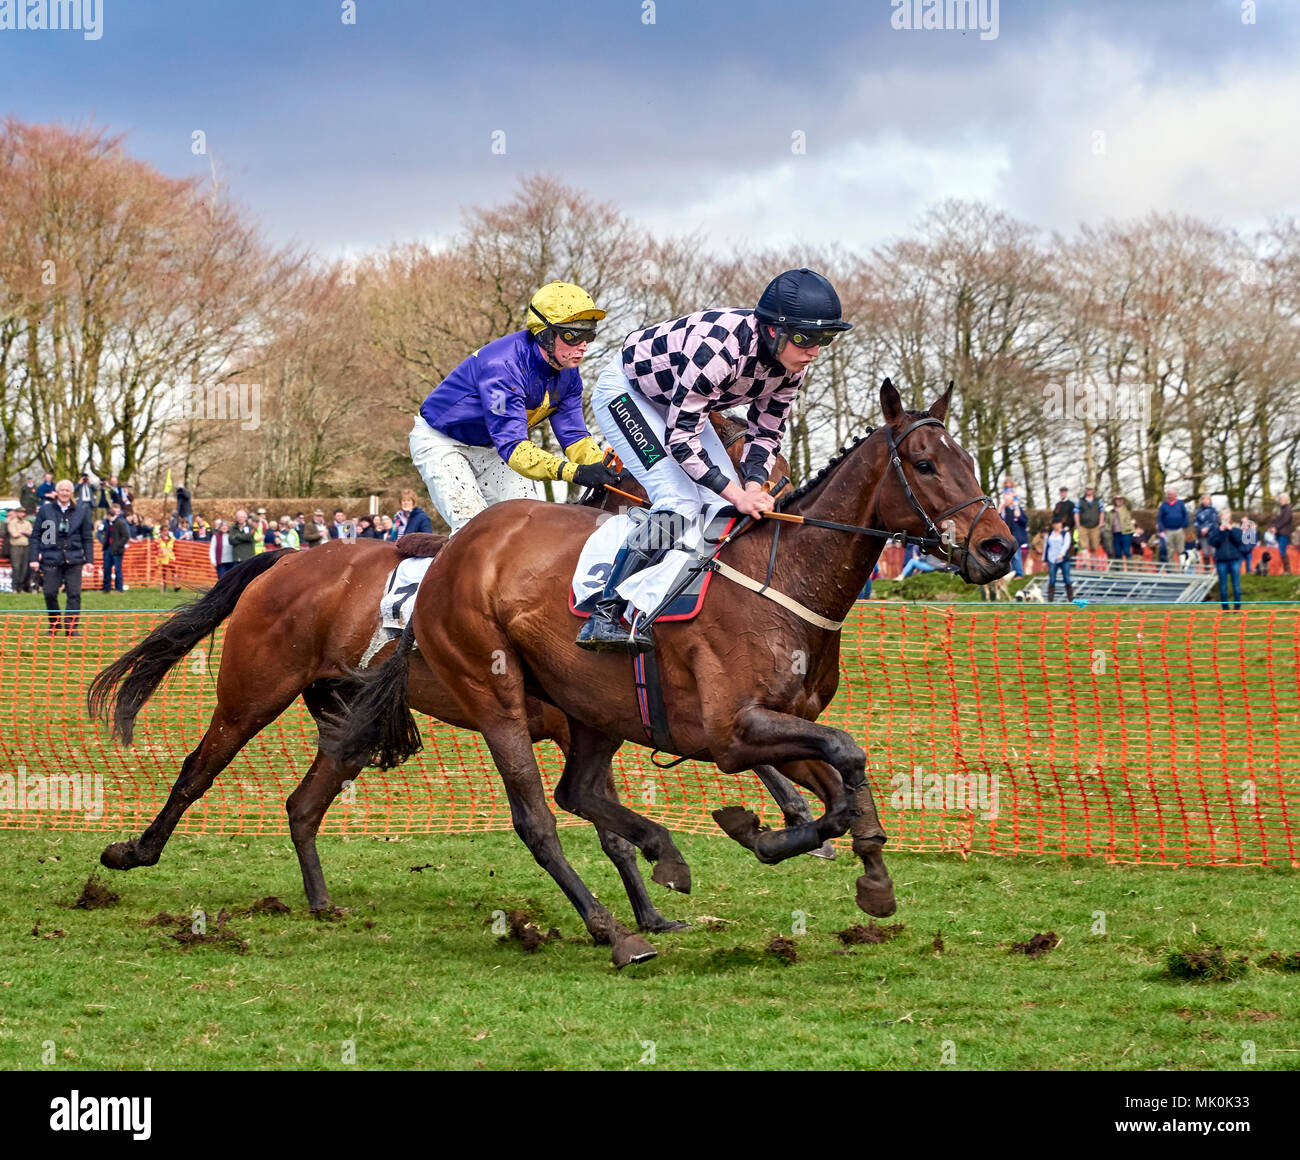 Two amateur jockeys riding bay and chestnut hunters, galloping over soft ground whilst competing in a point-to-point event Stock Photo